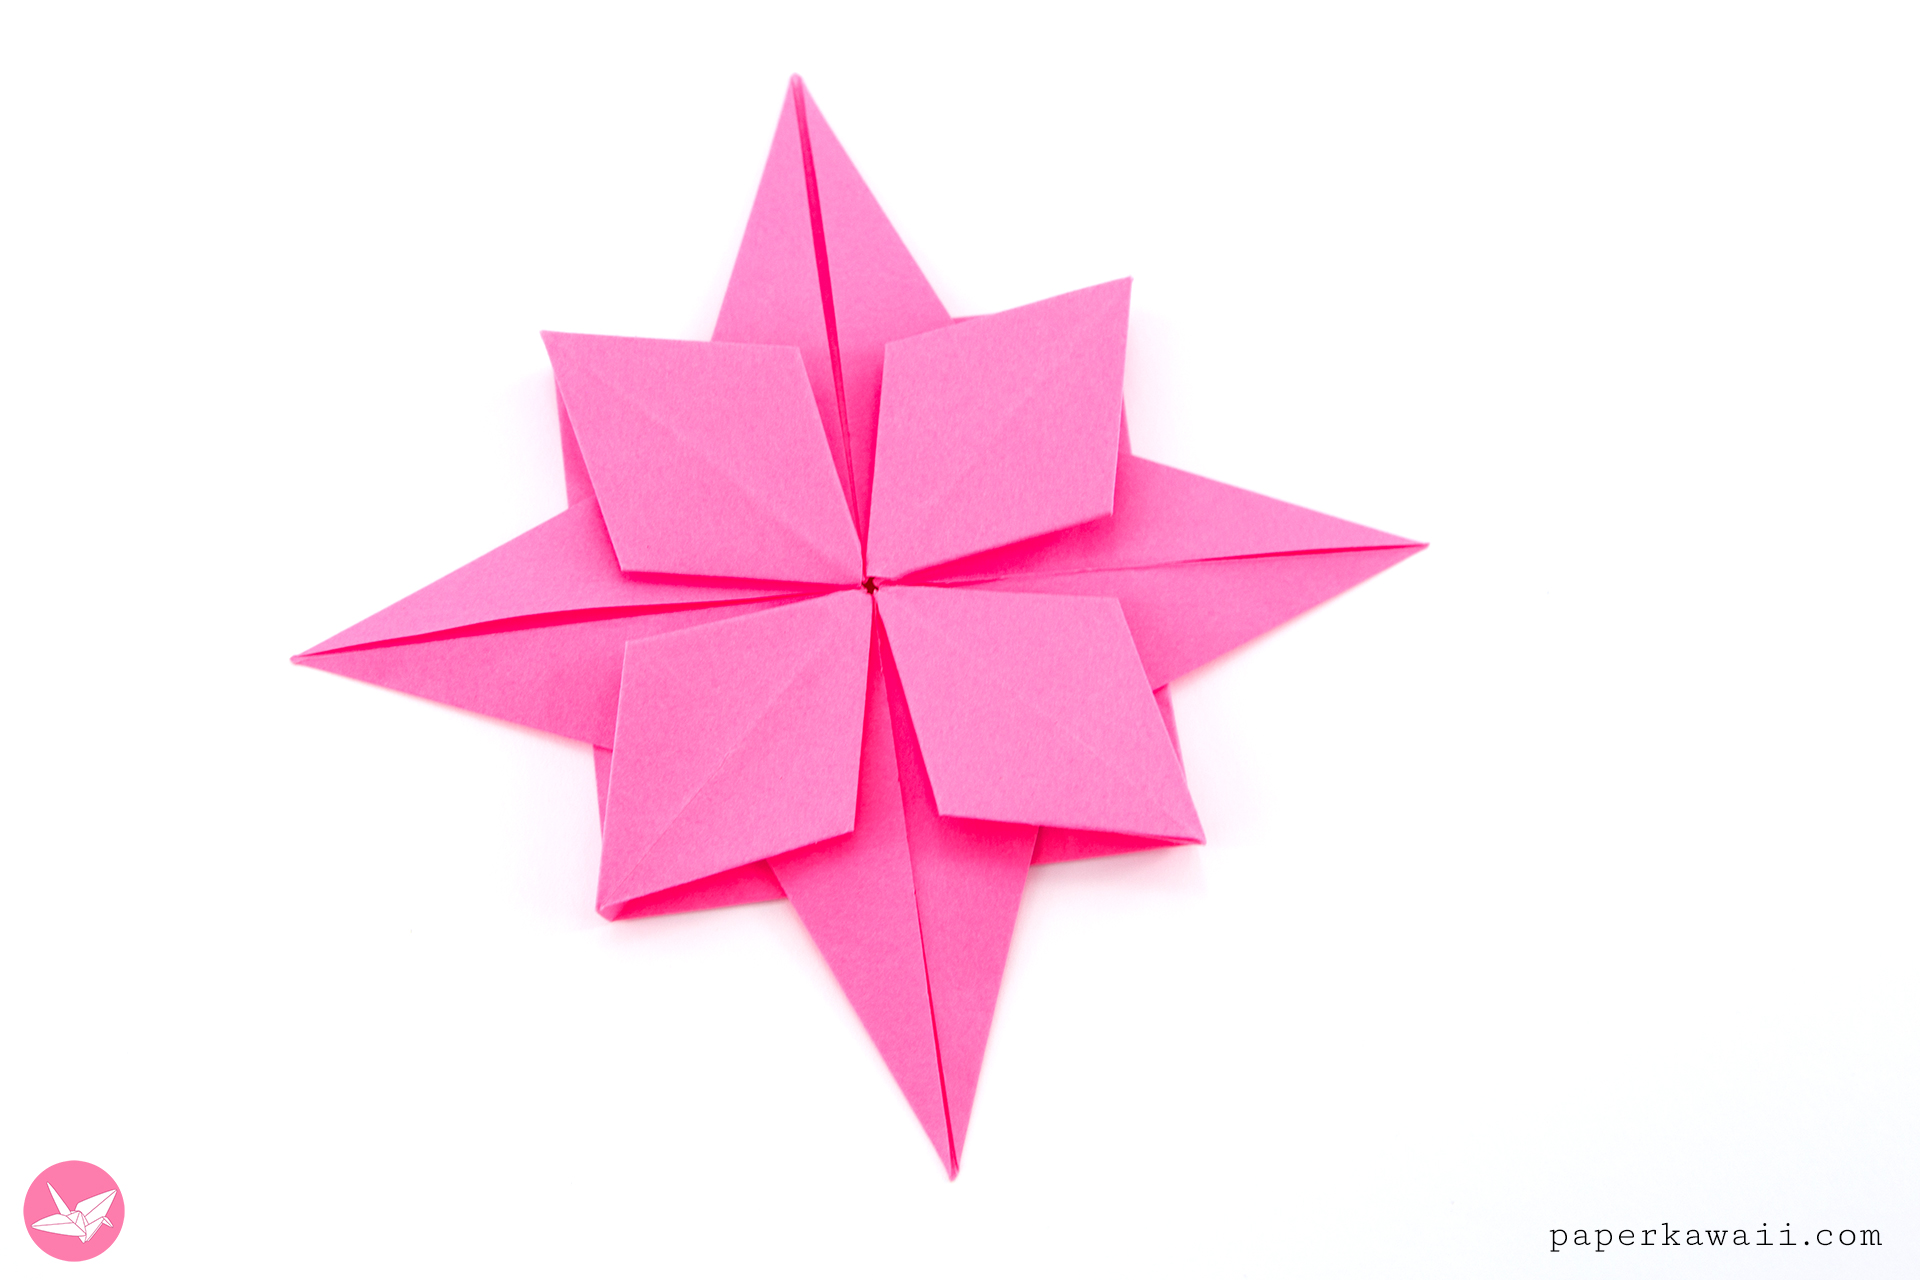 Paper Kawaii Free Origami Instructions Photo Video Tutorials